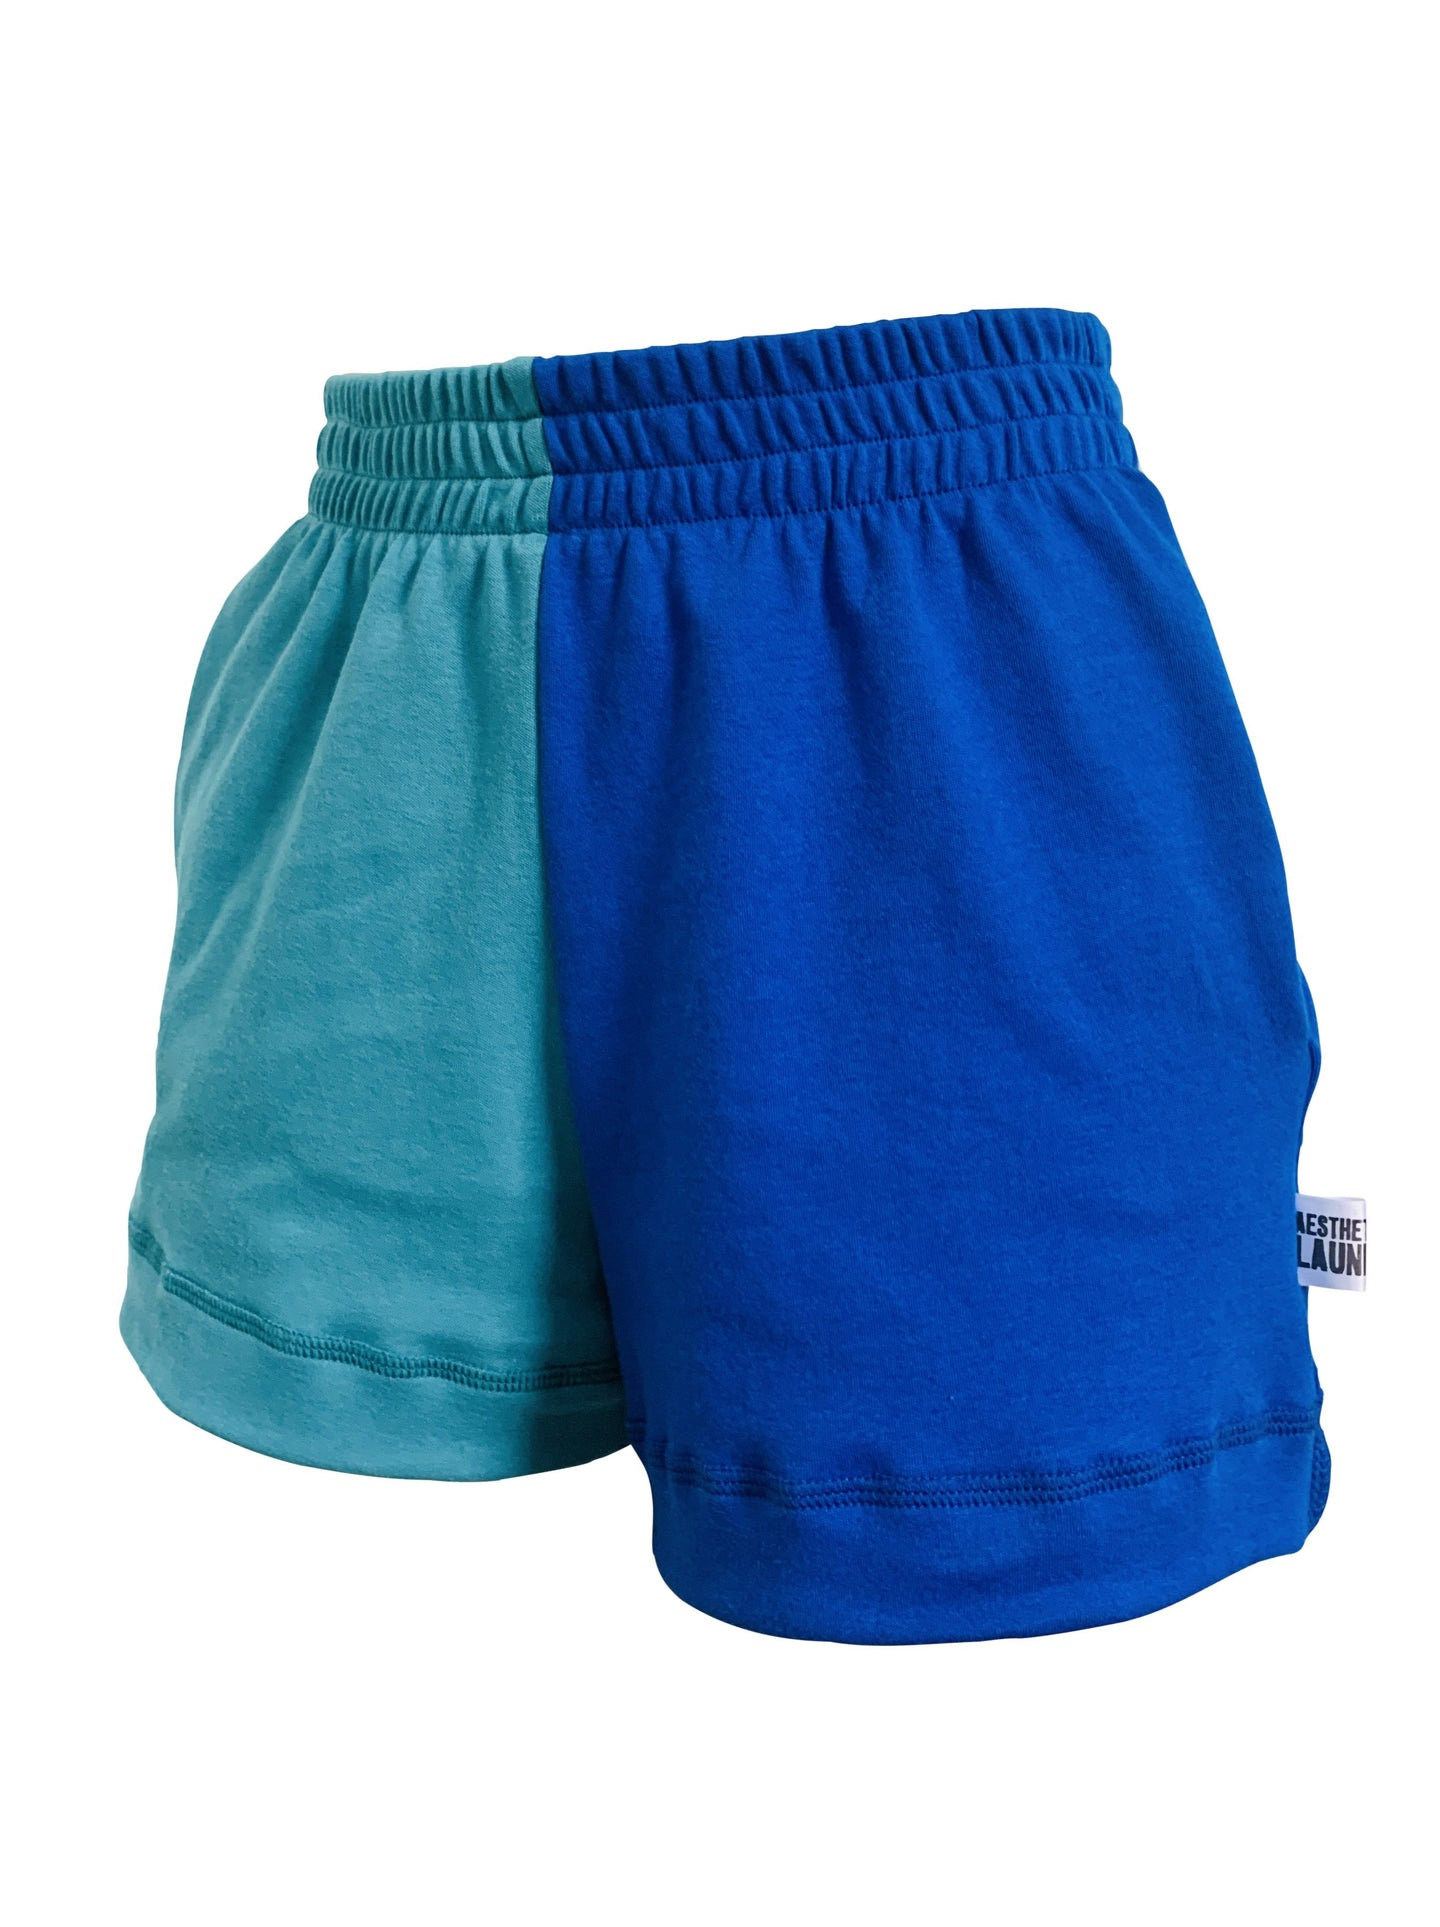 blue-teal-shorts